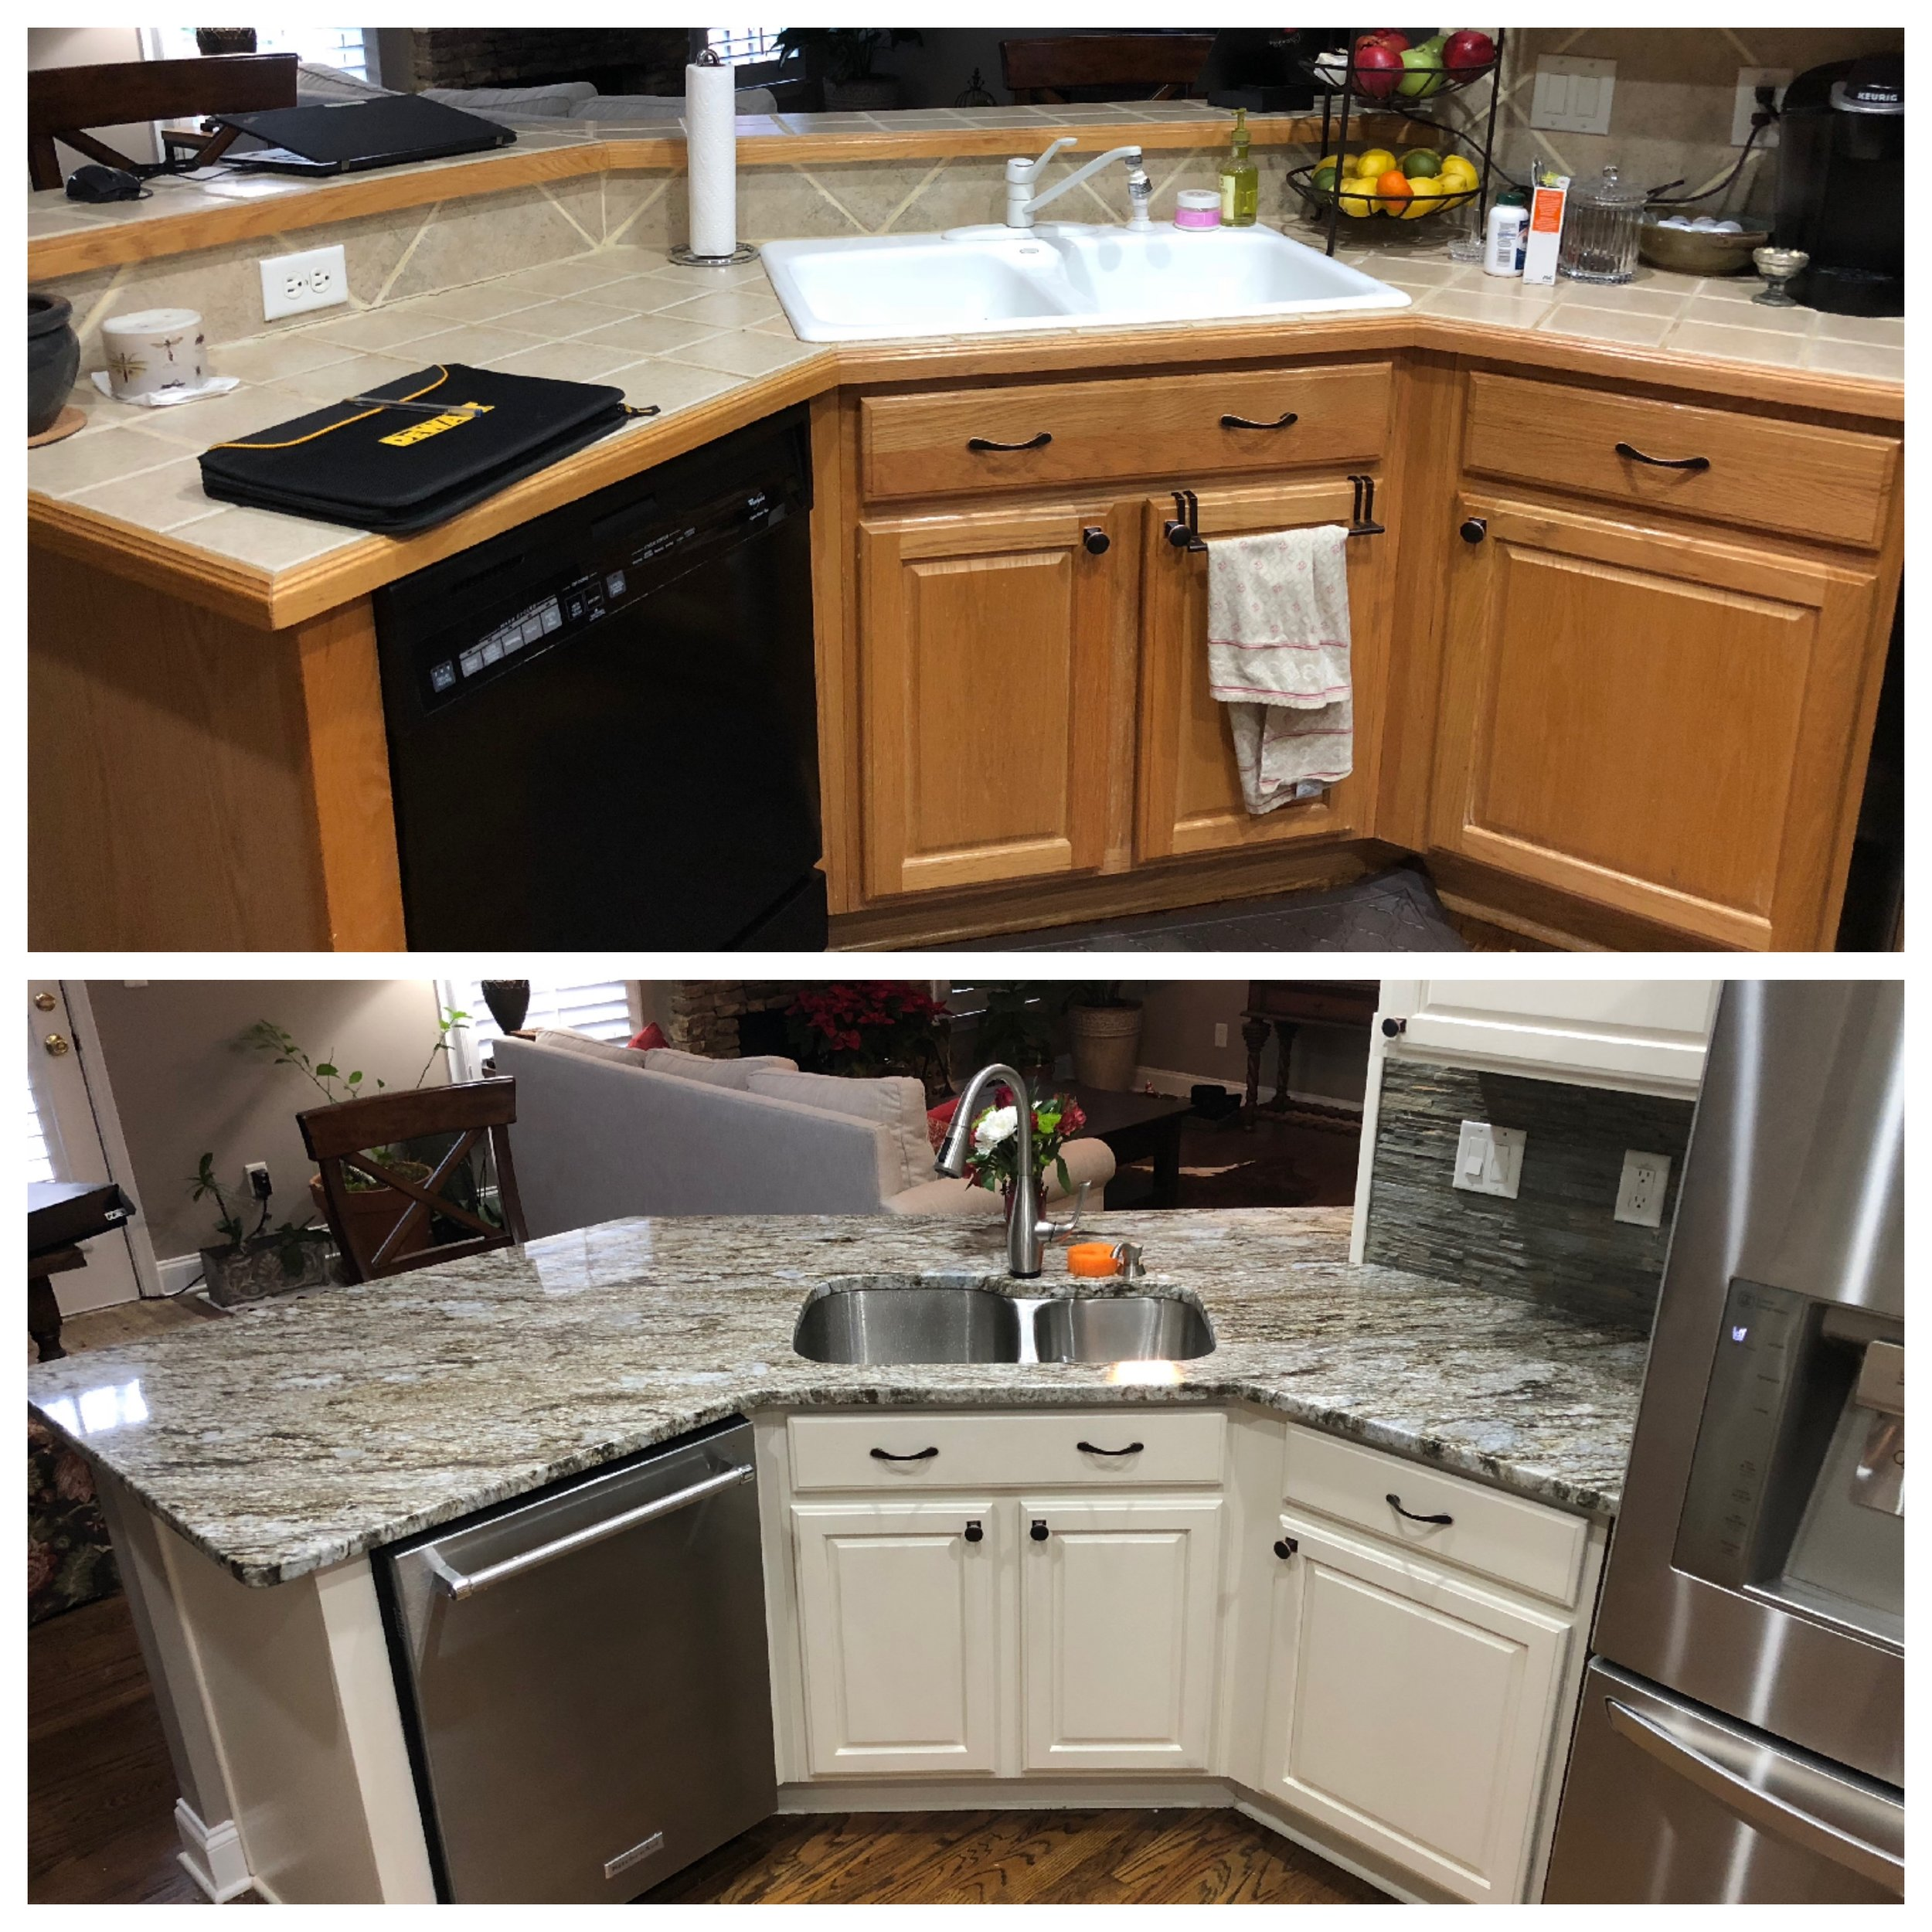 A before/after of a recent kitchen renovation. Refinishing existing cabinets can save you thousands of dollars. We added a new countertop, appliances, a stone backsplash, sink, and a faucet that only requires a touch to activate! It works on a battery operated sensor located under the sink cabinet.